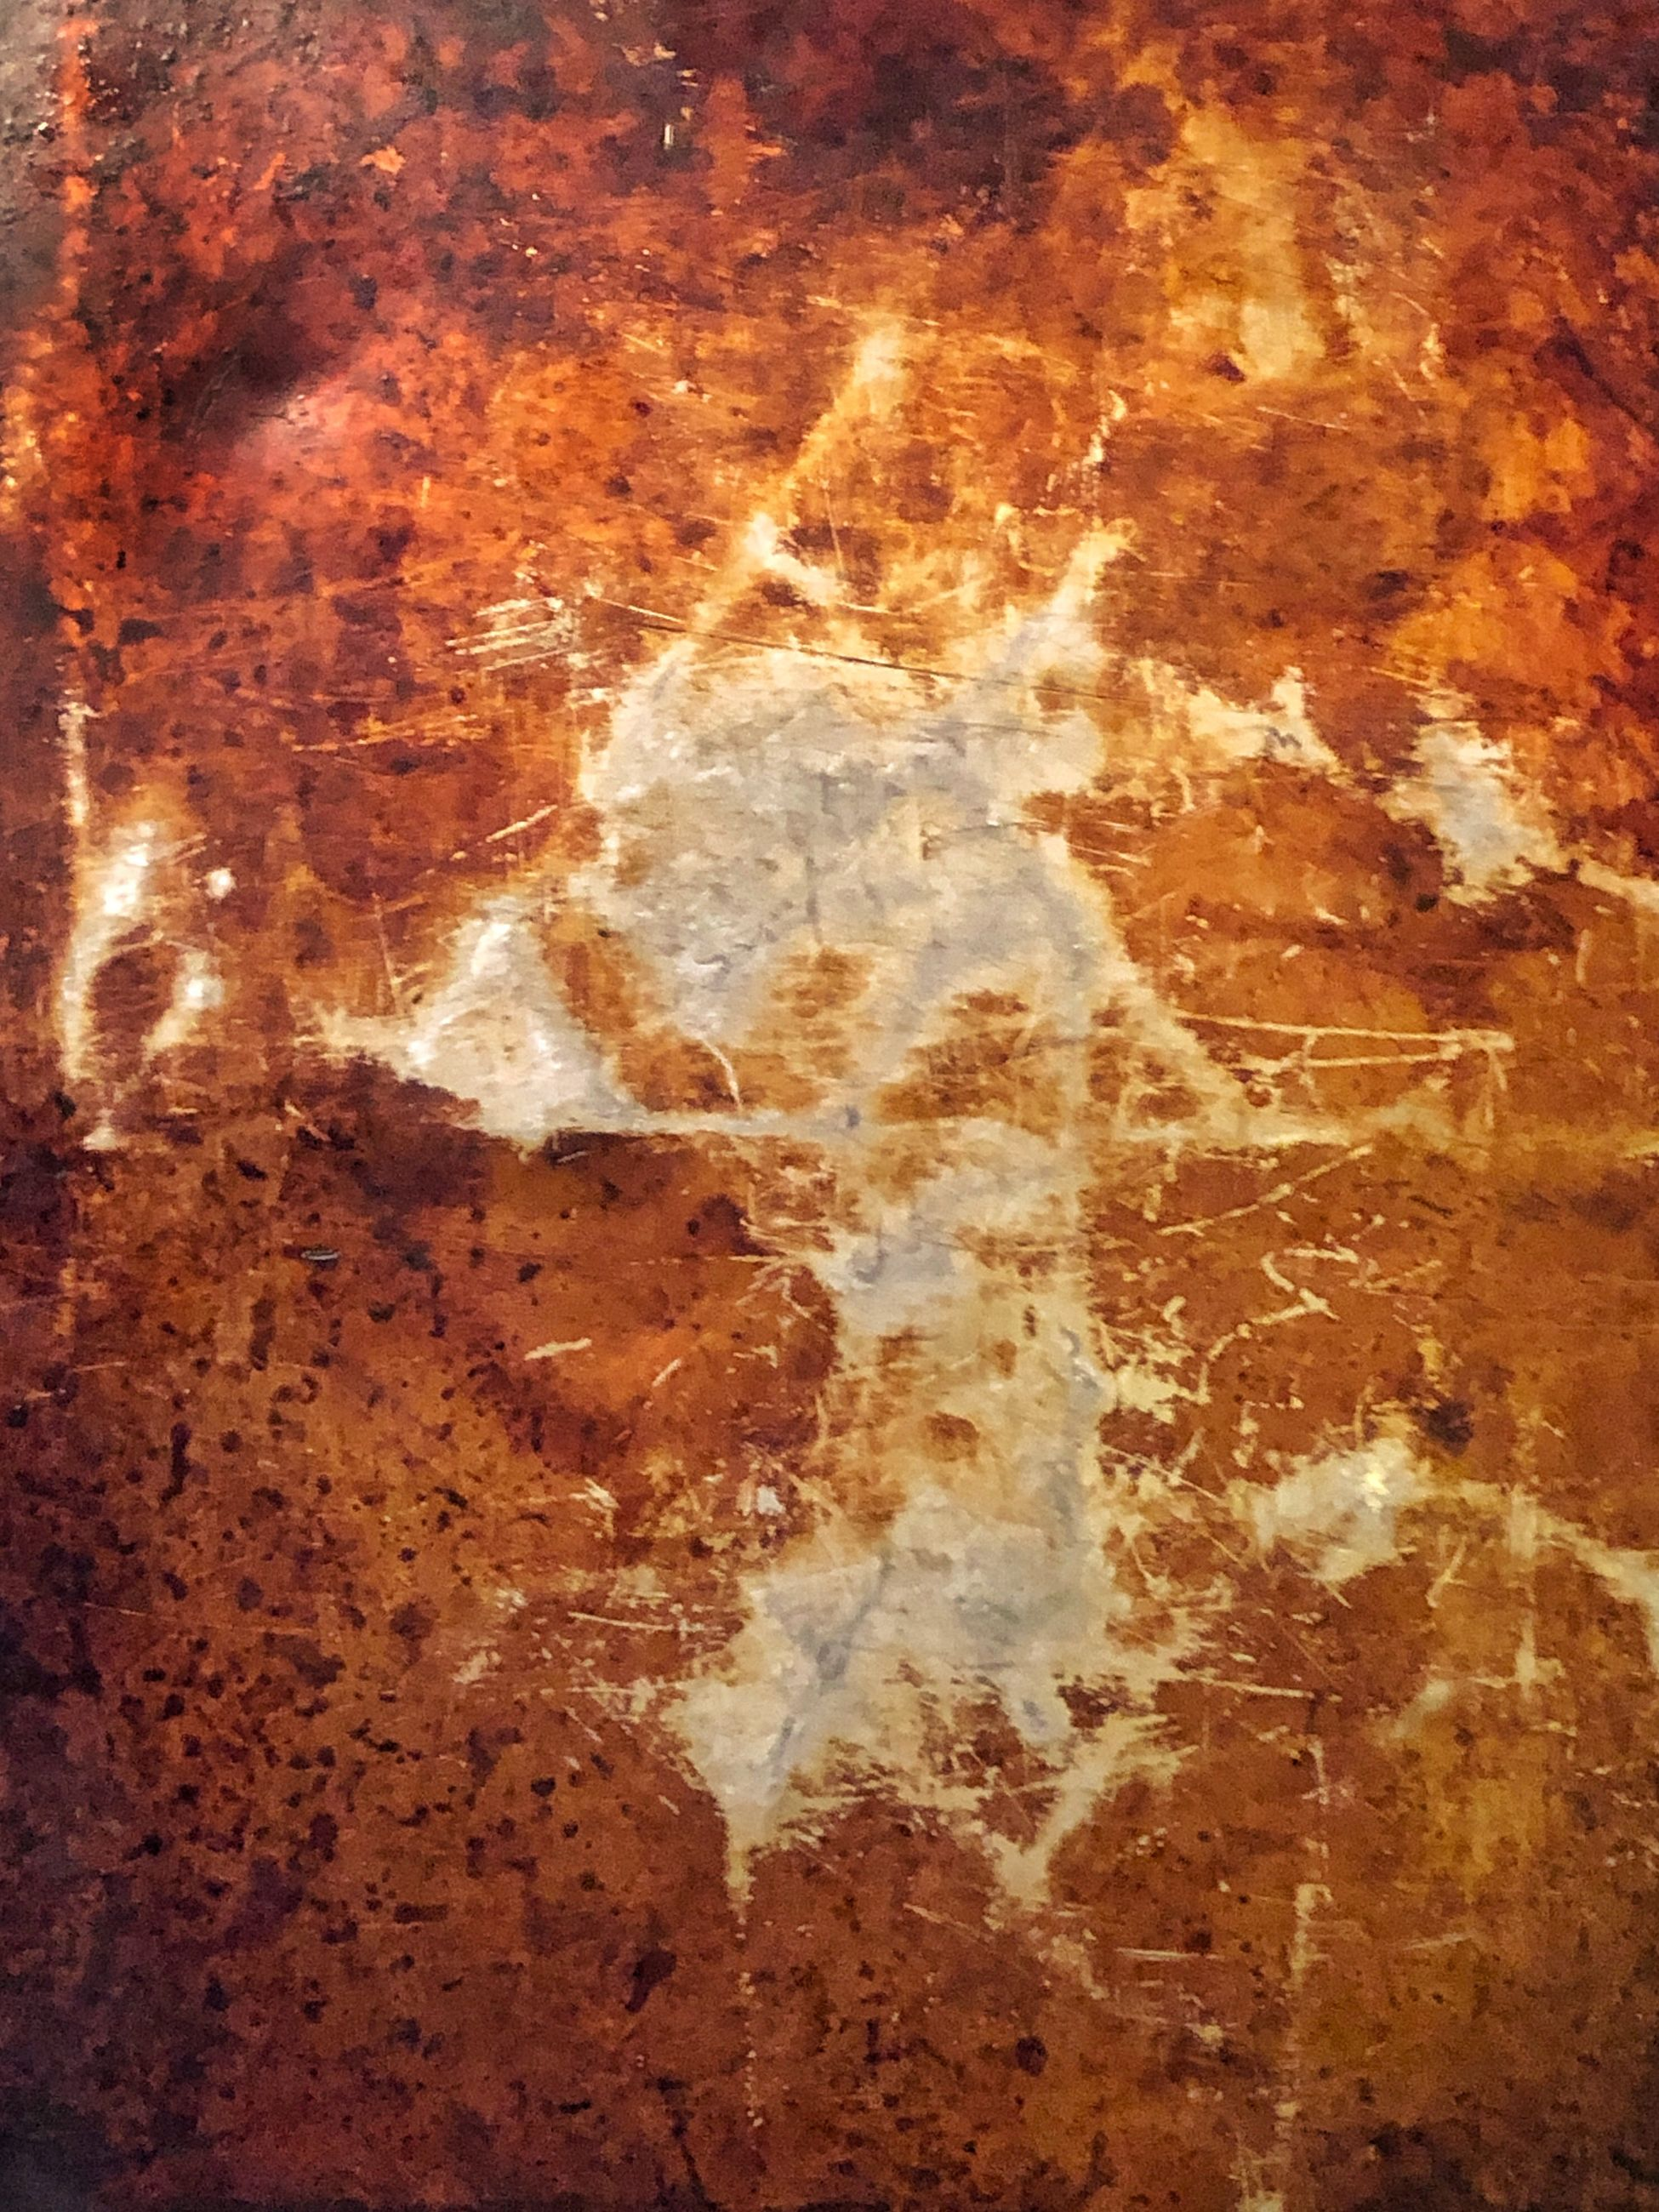 backgrounds, textured, full frame, no people, pattern, orange color, abstract, brown, close-up, old, material, solid, wall - building feature, art and craft, architecture, nature, marble, rough, dirt, outdoors, abstract backgrounds